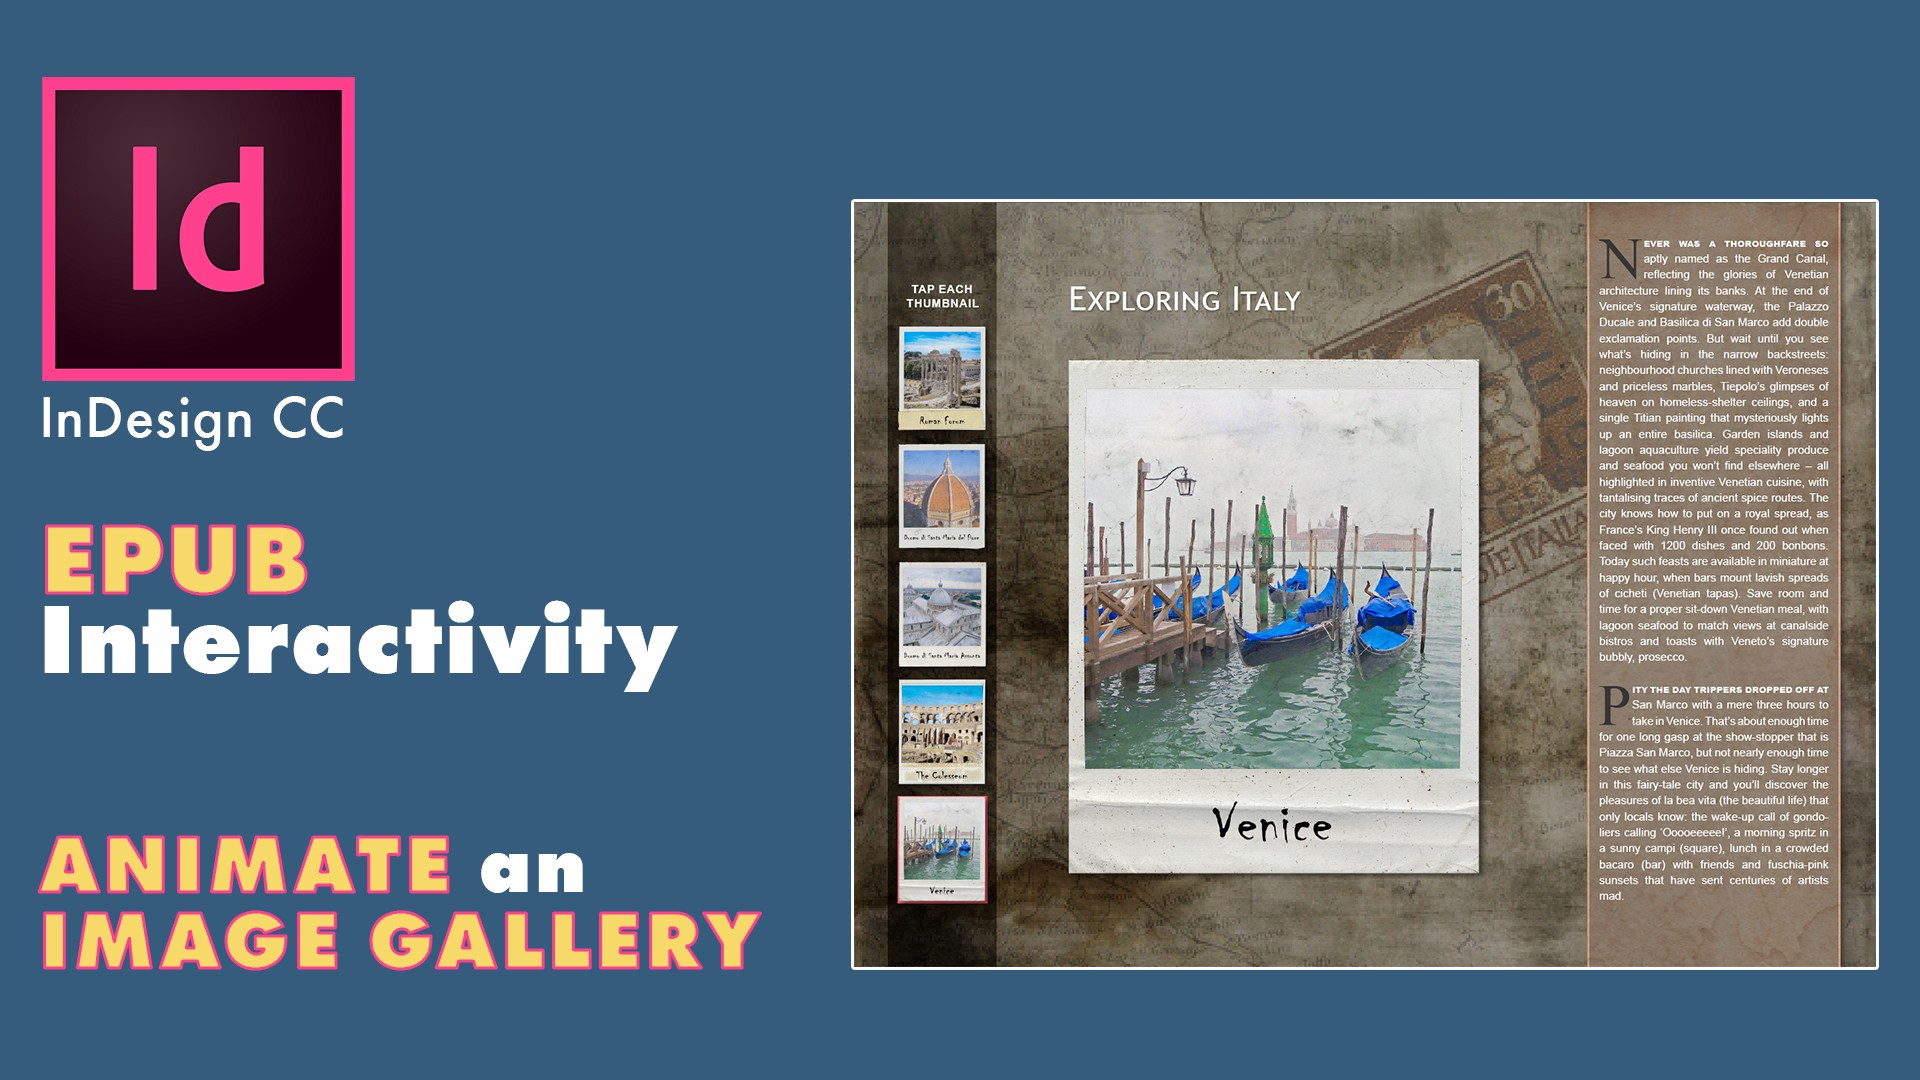 InDesign CC EPUB Interactivity — Animate an Image Gallery